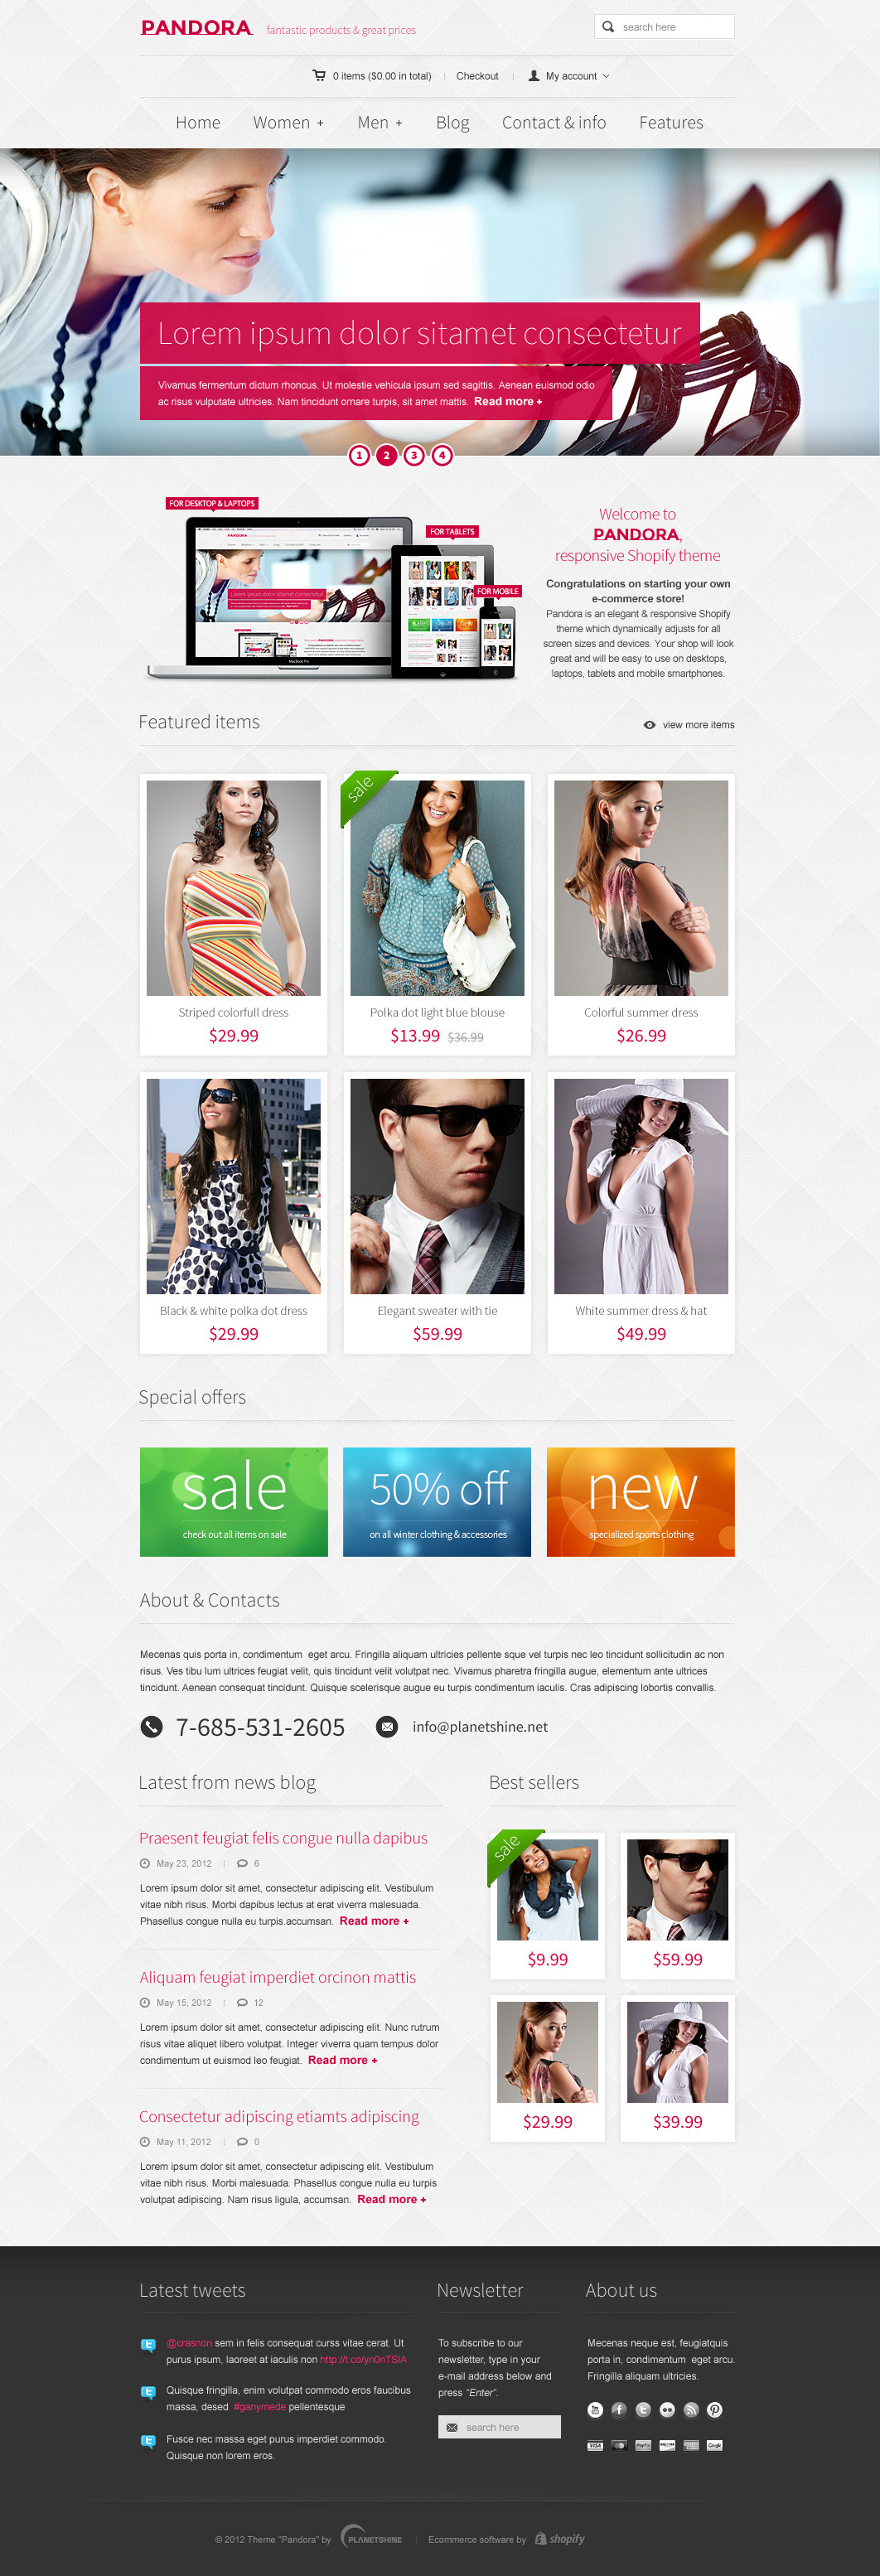 Pandora - Responsive WooCommerce HTML5 WordPress Theme